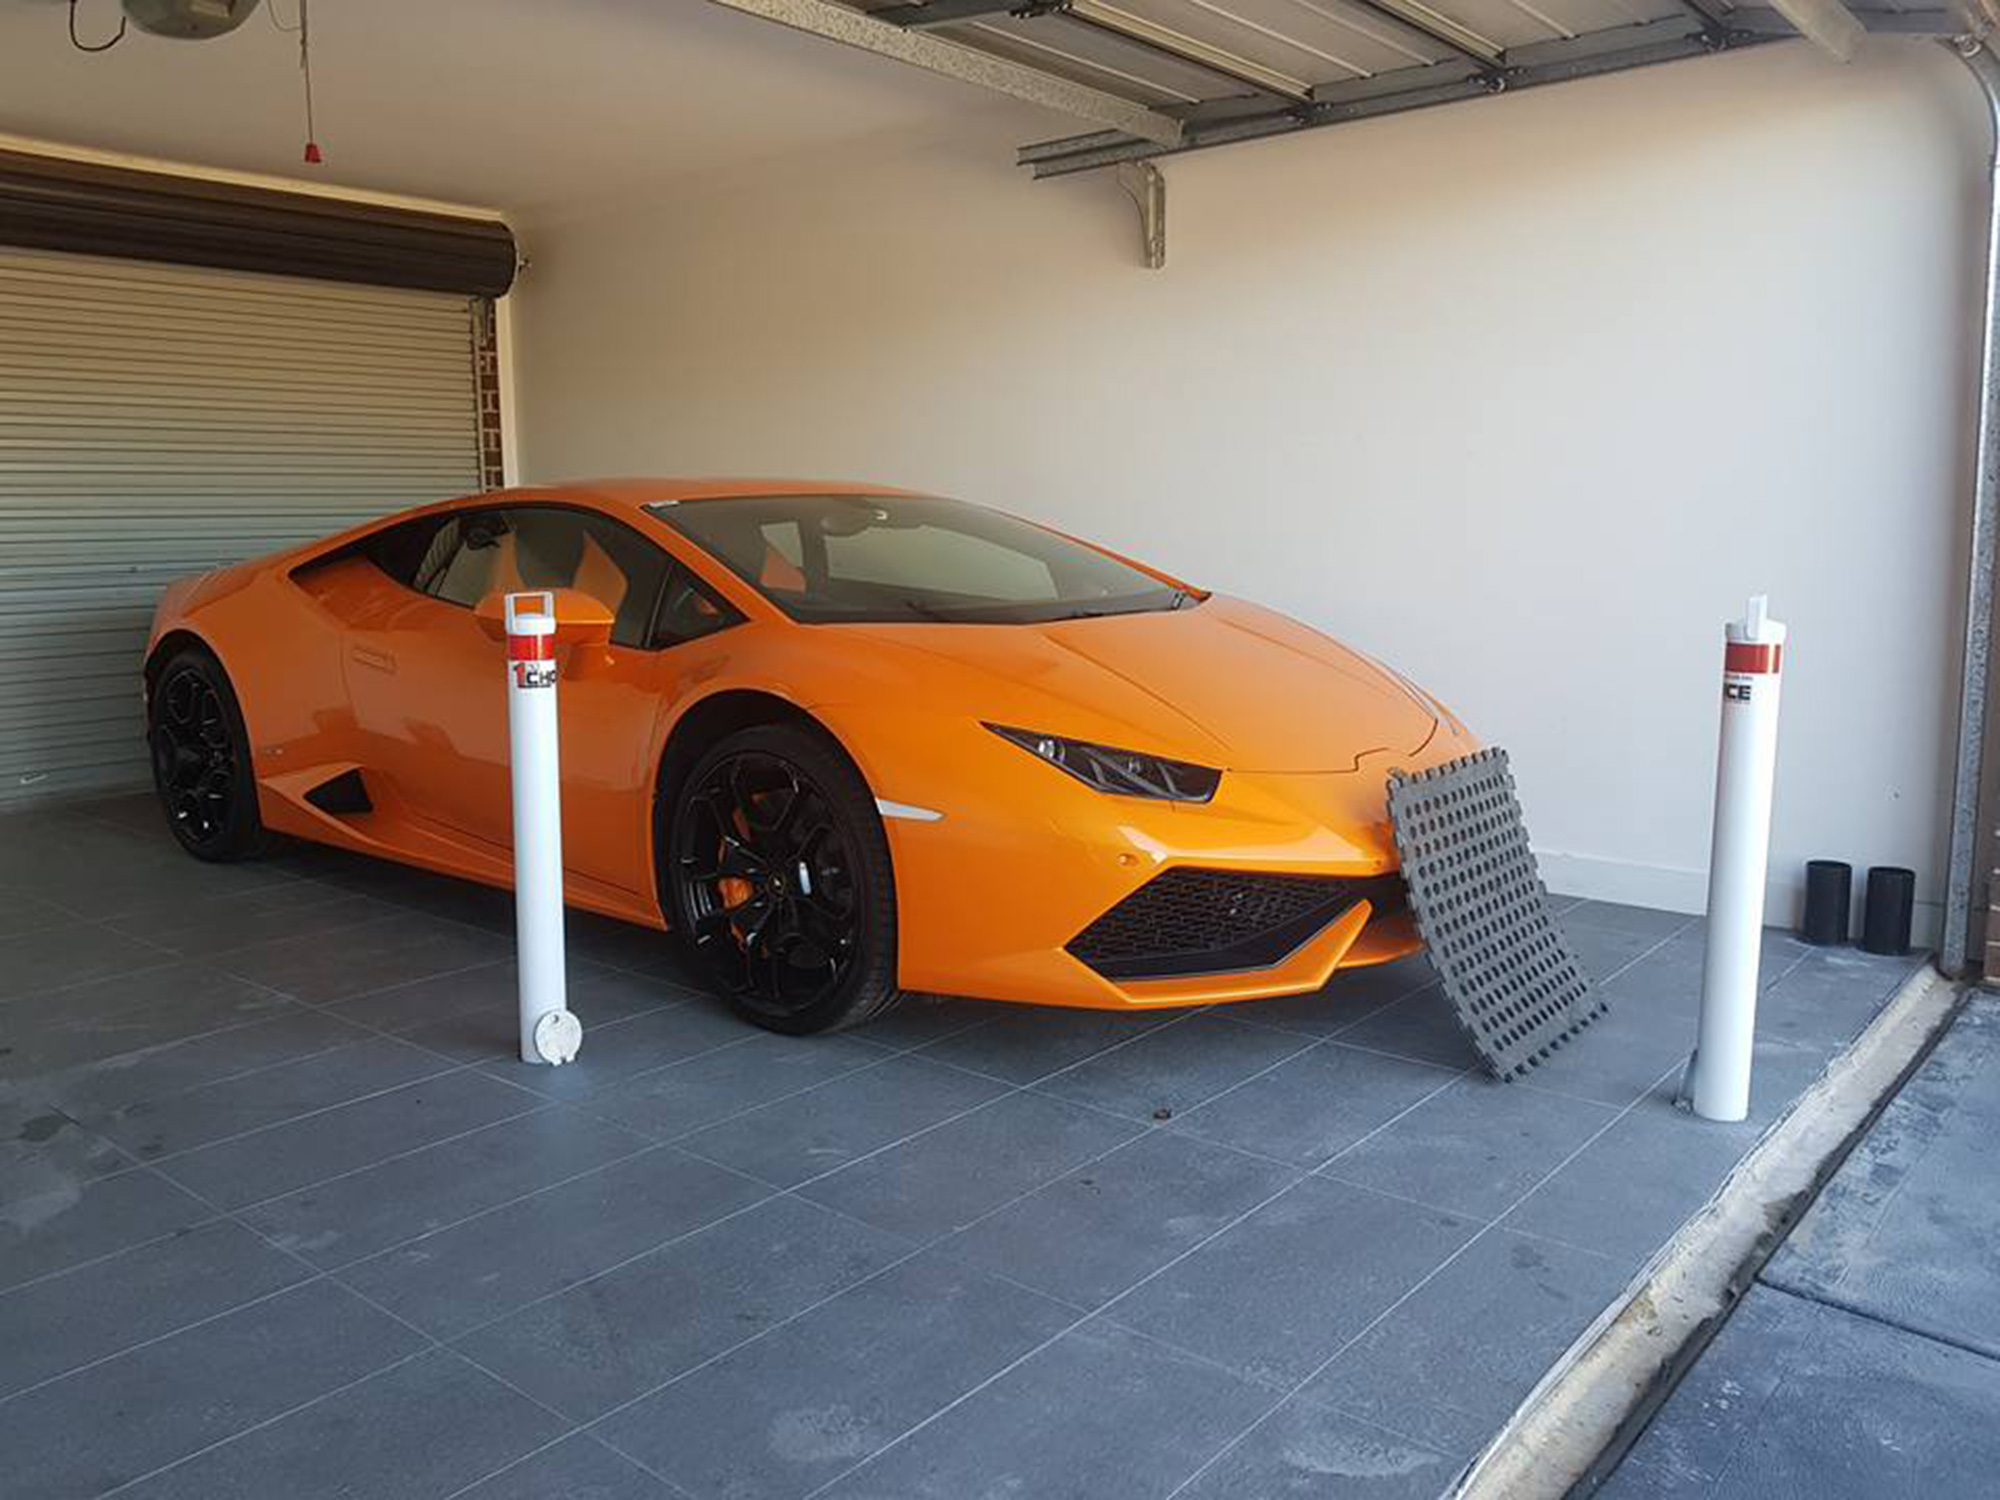 Home - image lambo on https://firstchoicebollards.com.au